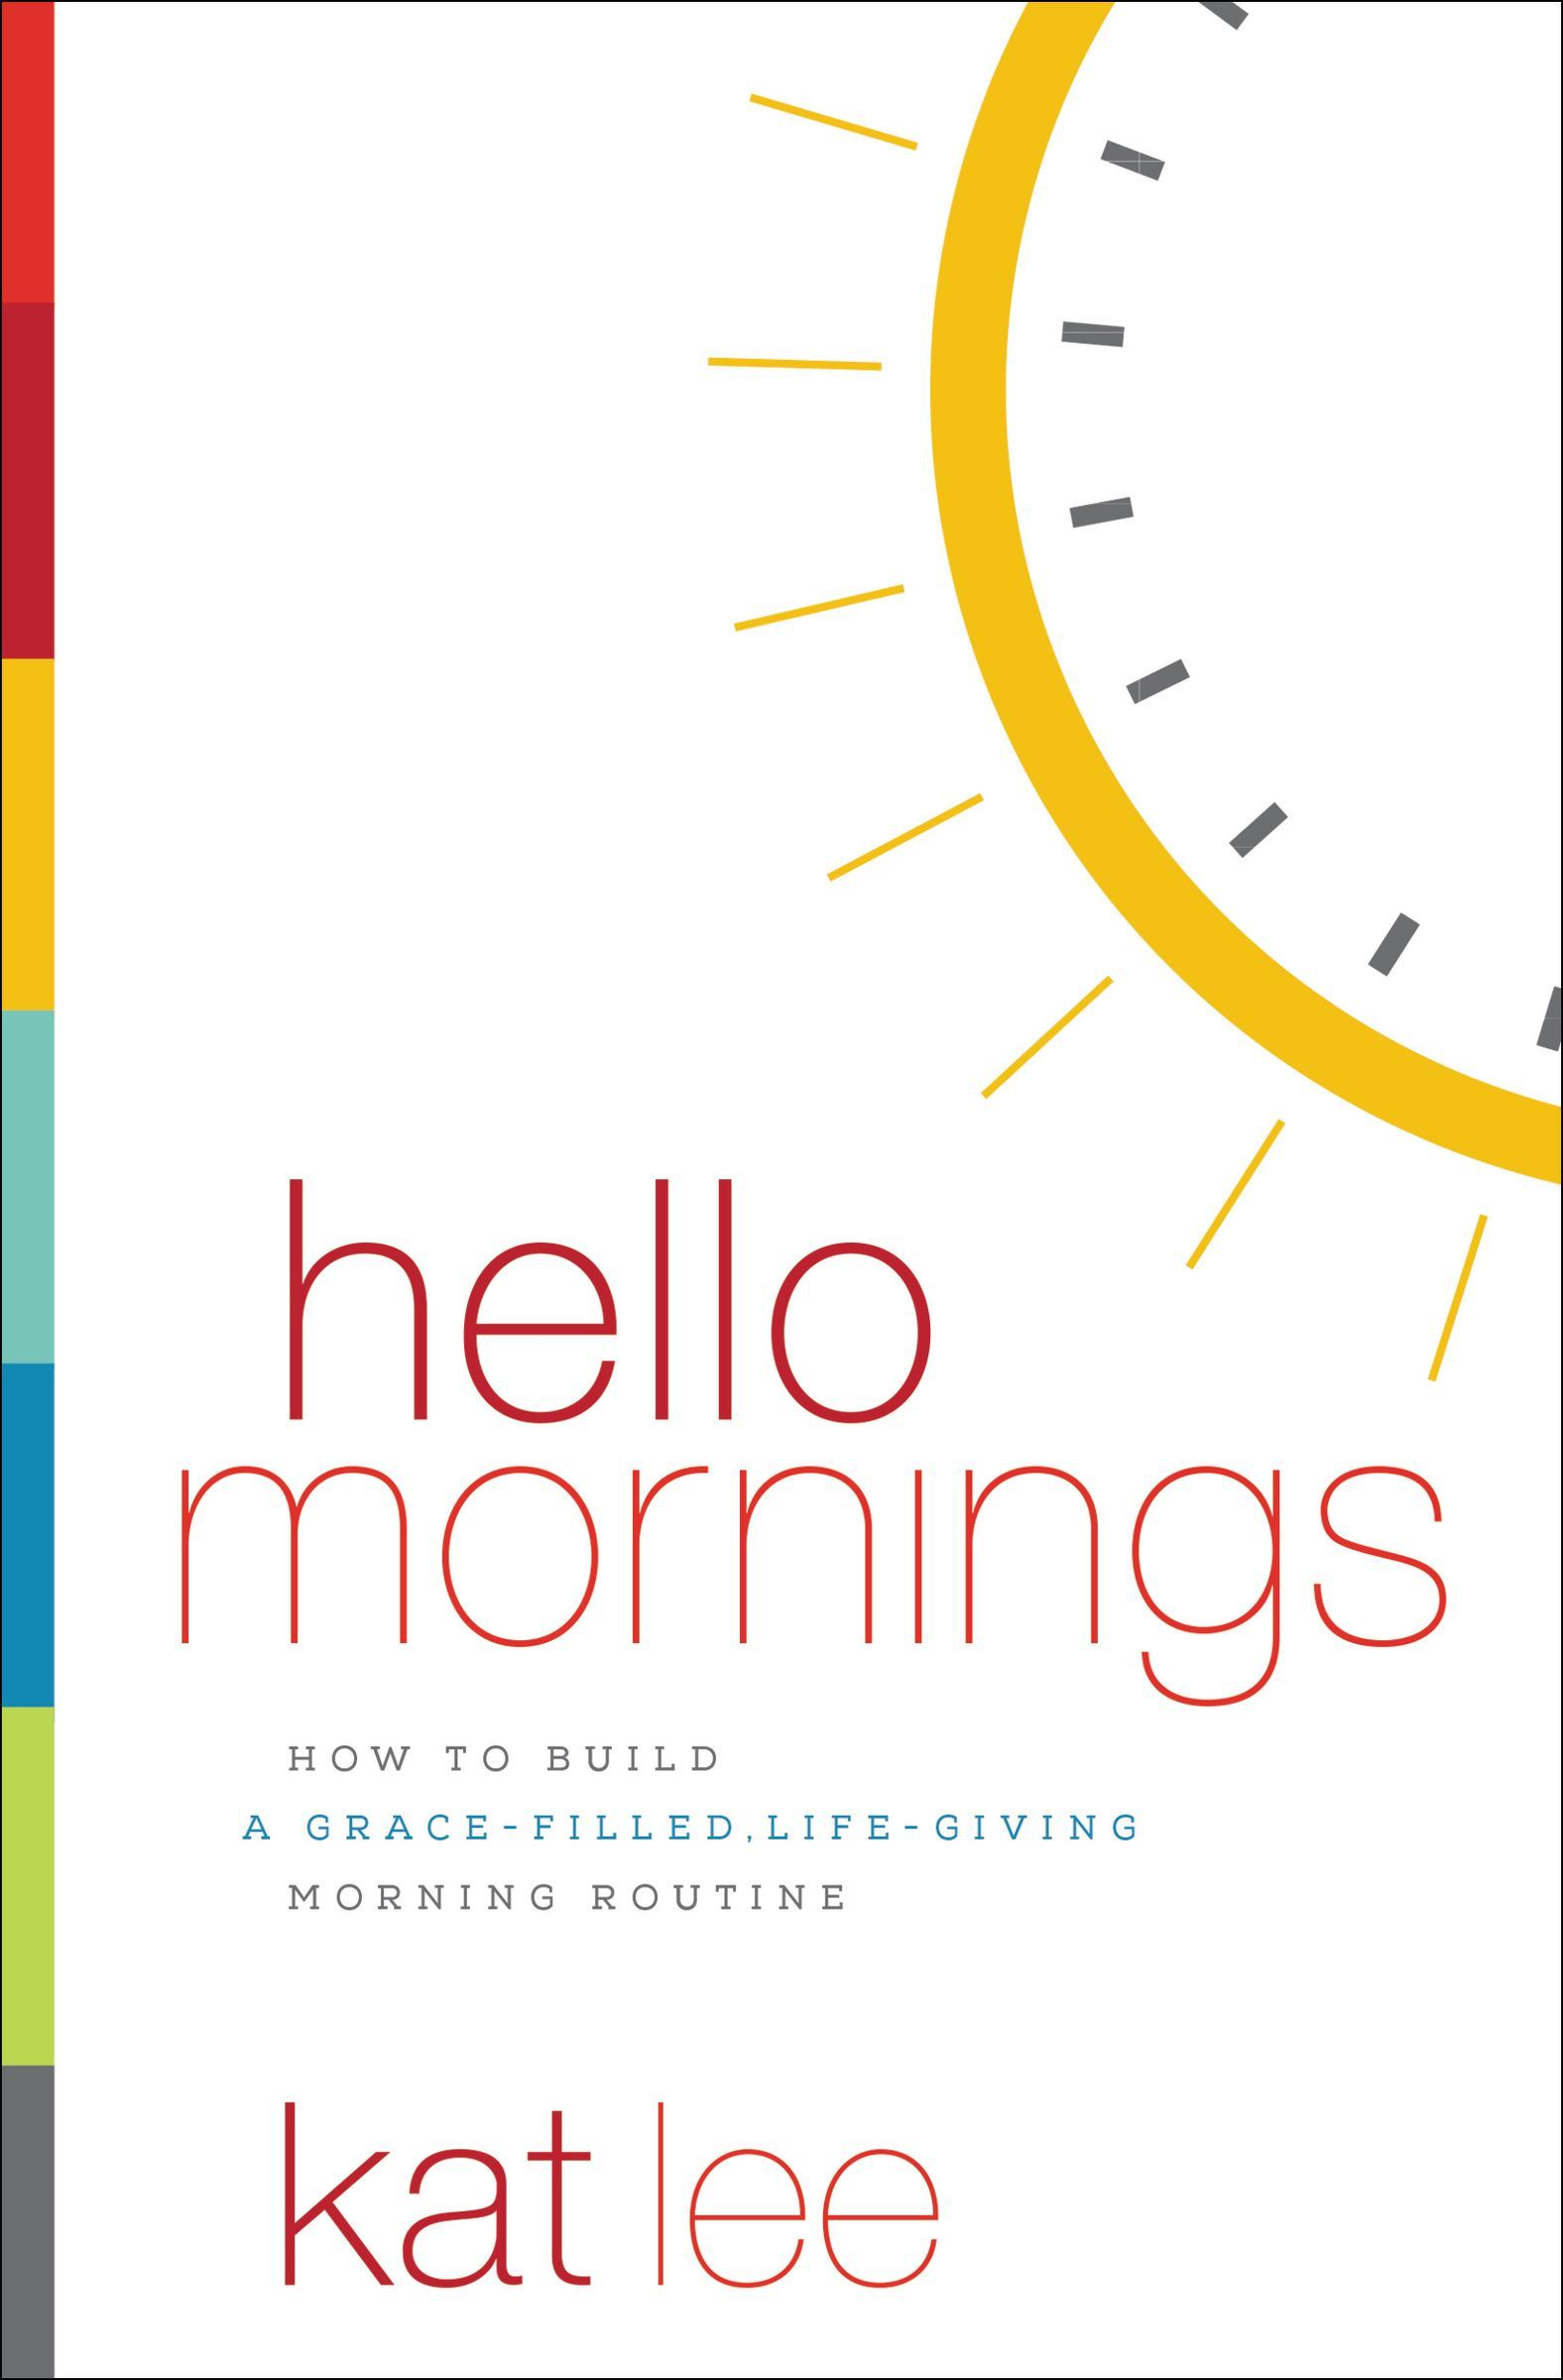 Hello Mornings How to Build a Grace-Filled, Life-Giving Morning Routine